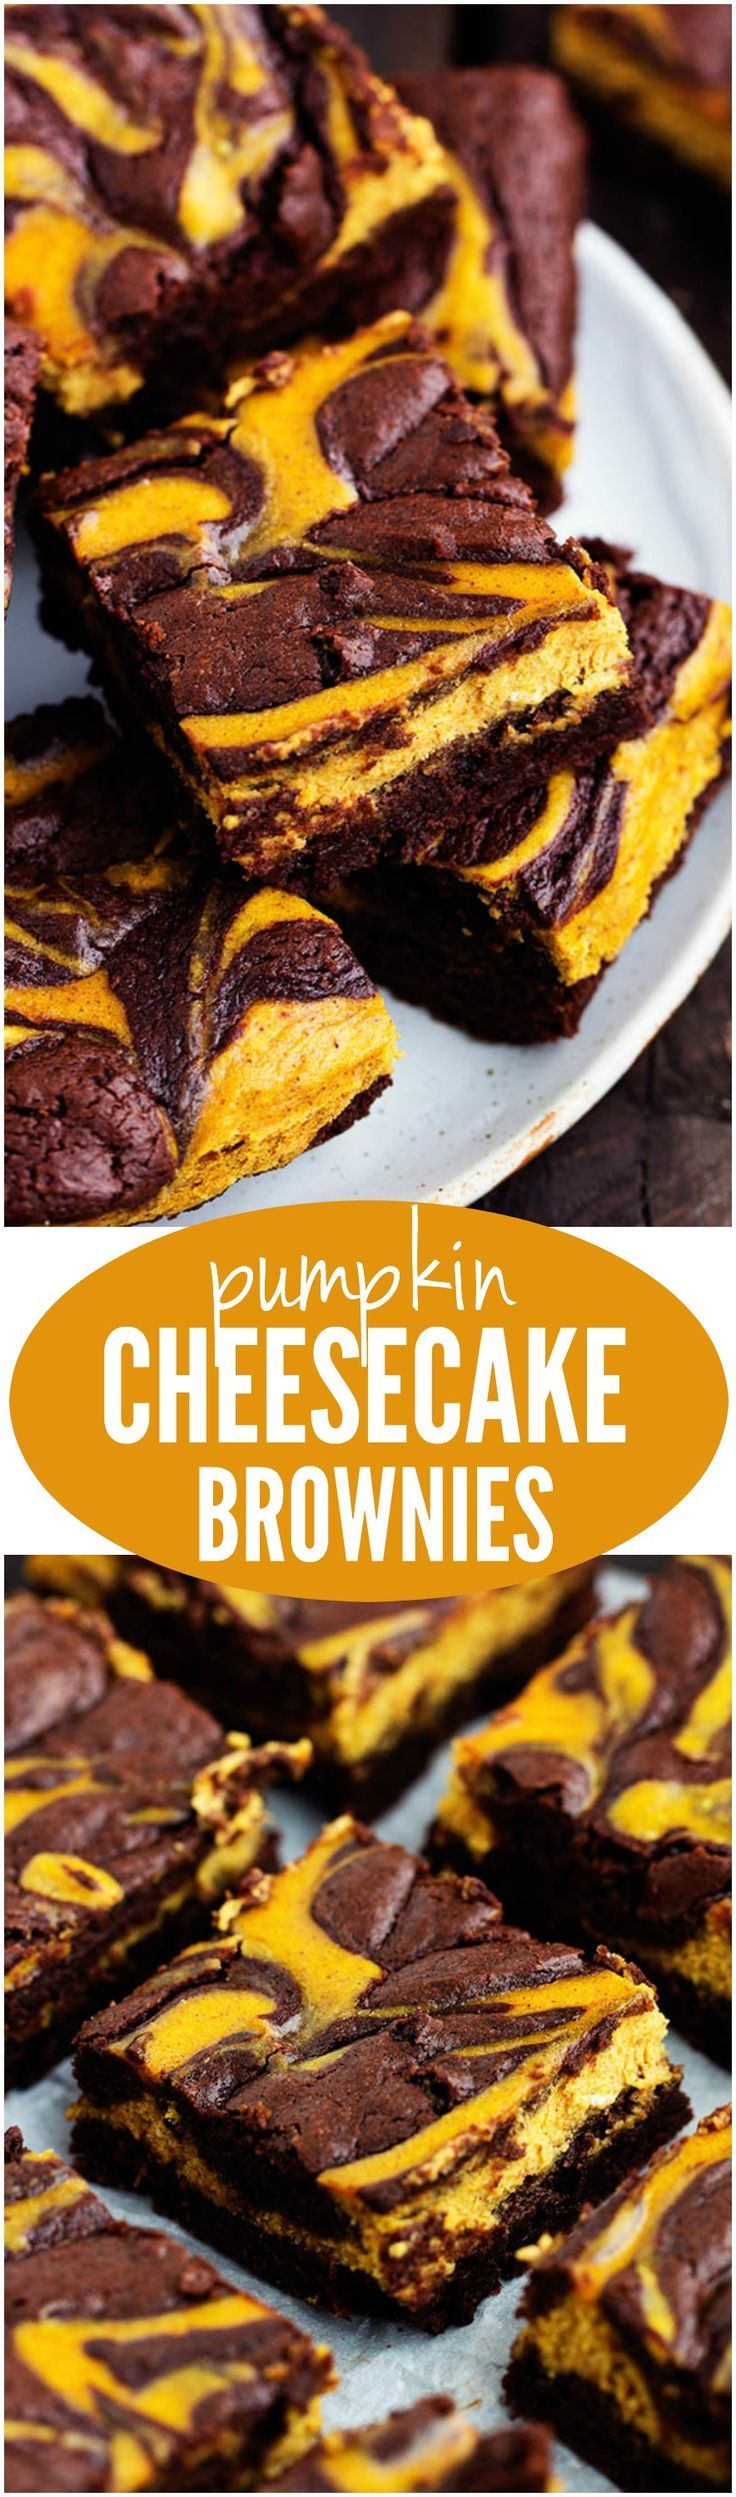 Pumpkin Cheesecake Brownies - Perfectly moist and fudgy brownies swirled with pumpkin cheesecake. These are so rich and delicious and they make an amazing fall treat!